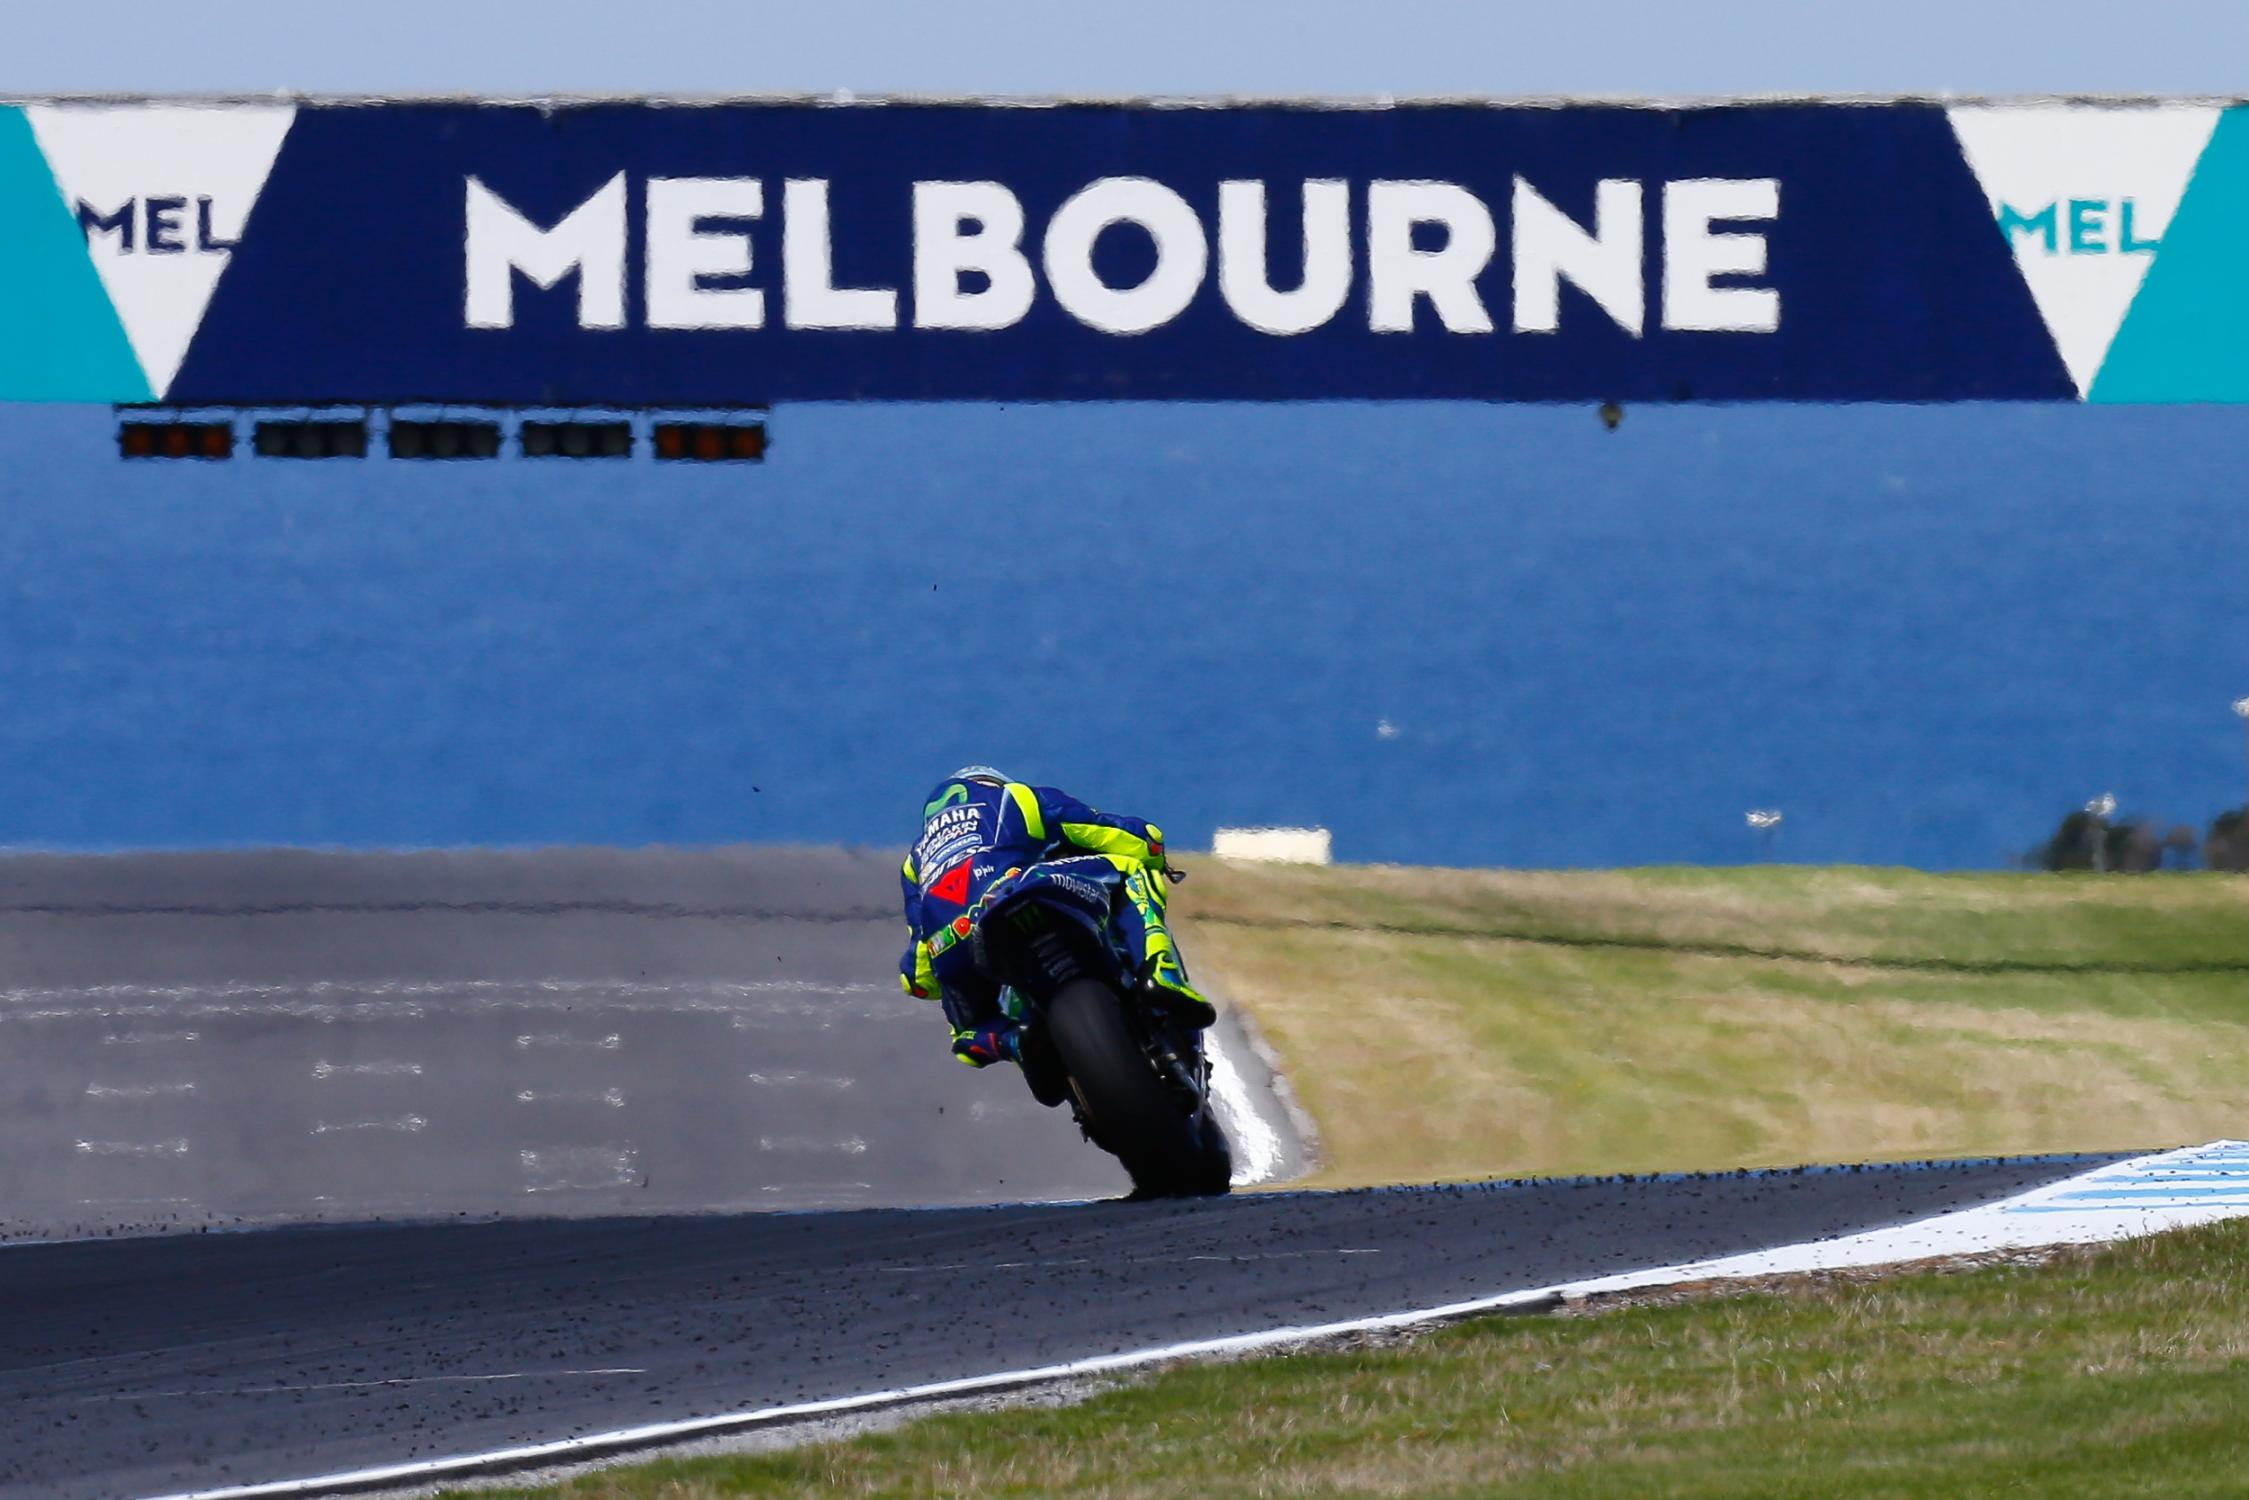 [MotoGP] Test Phillip Island 46-valentino-rossi-ita-2017-action-australia-motogp-phillip-island-pre-season-test16277_test2017_action.gallery_full_top_fullscreen